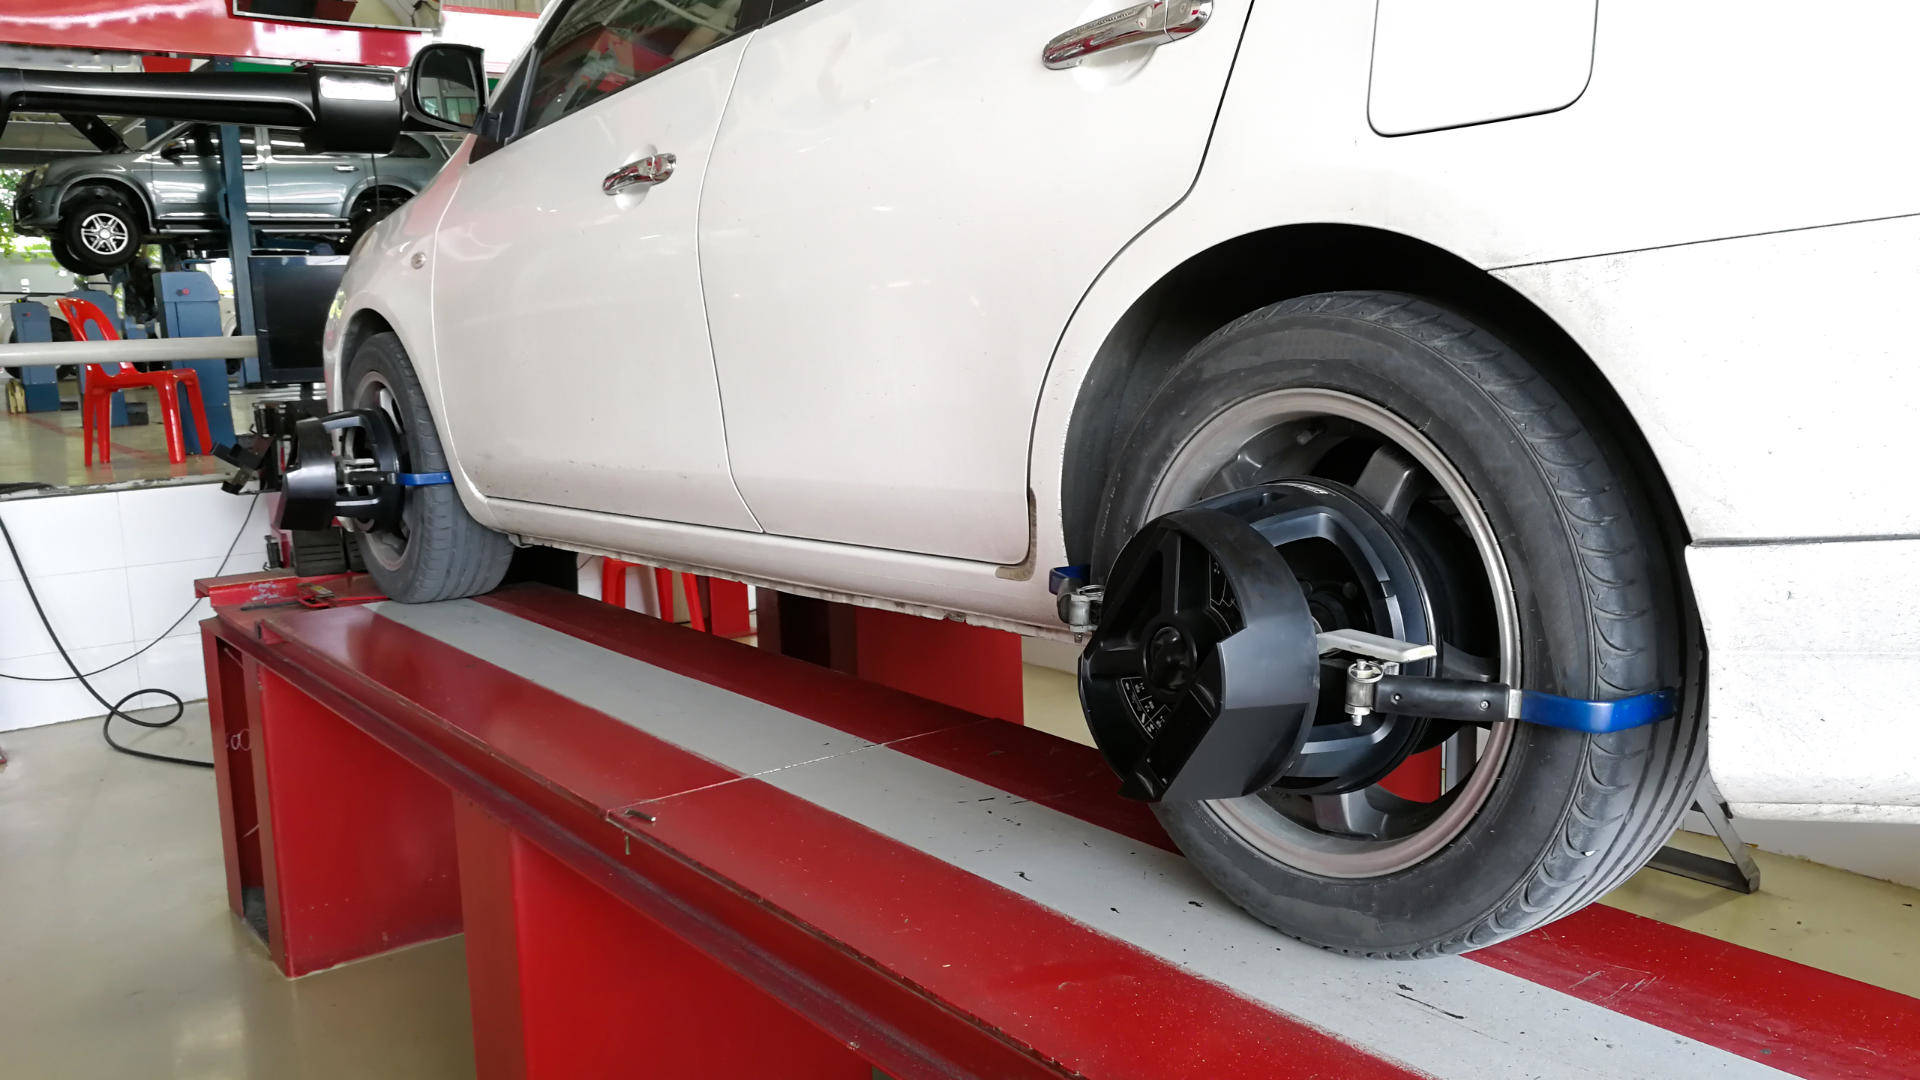 Urgent Hiring Expert in Tire change and Balancing + Alignment